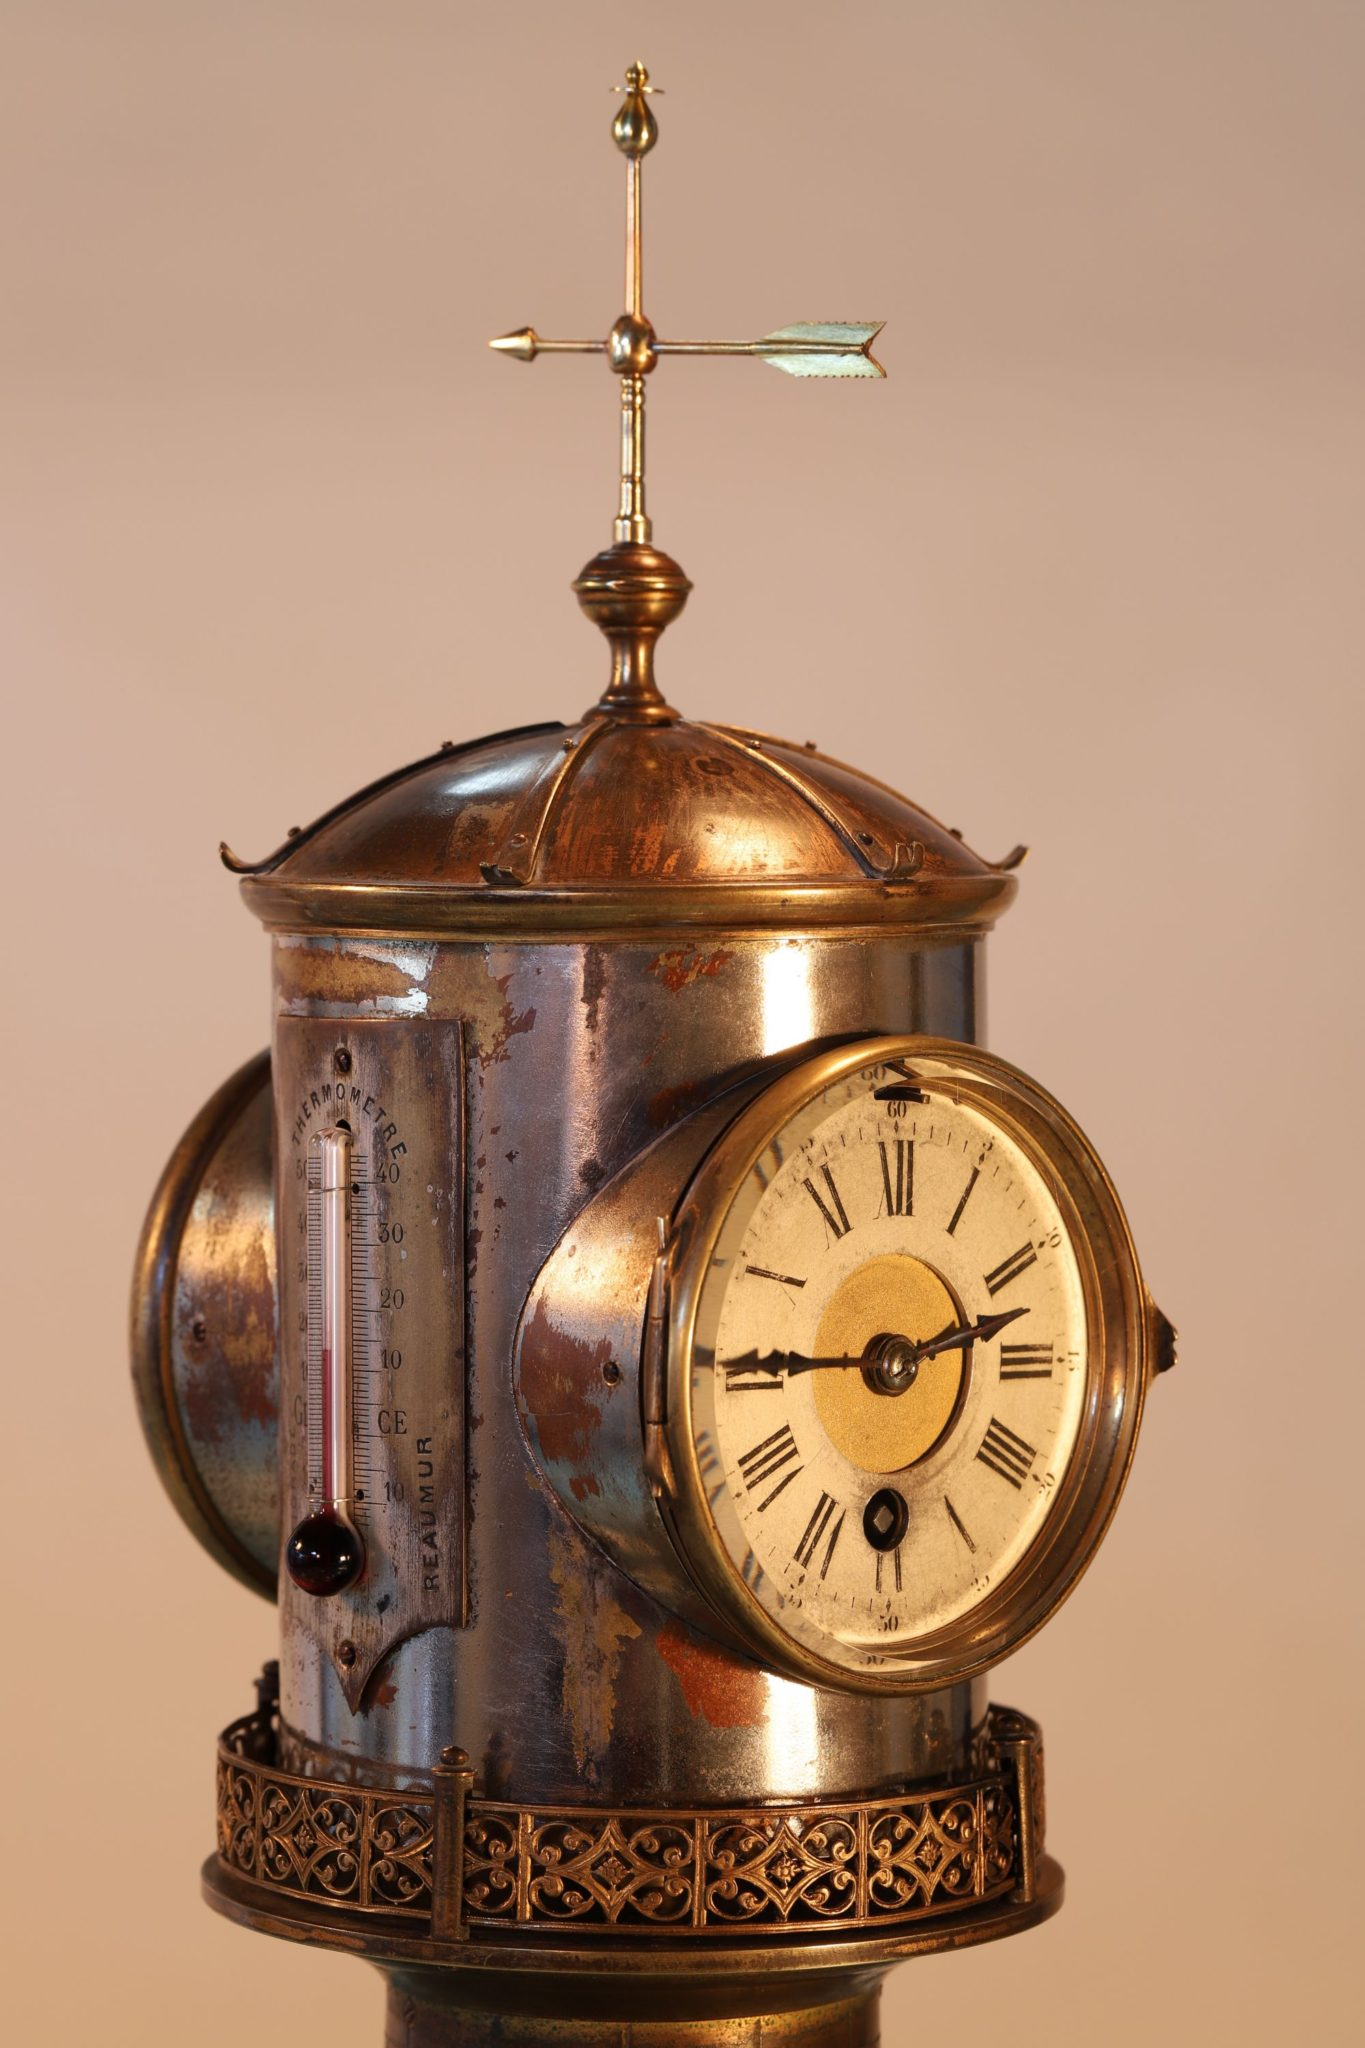 Image of Guilmet Industrial Series Lighthouse Clock Barometer c1880